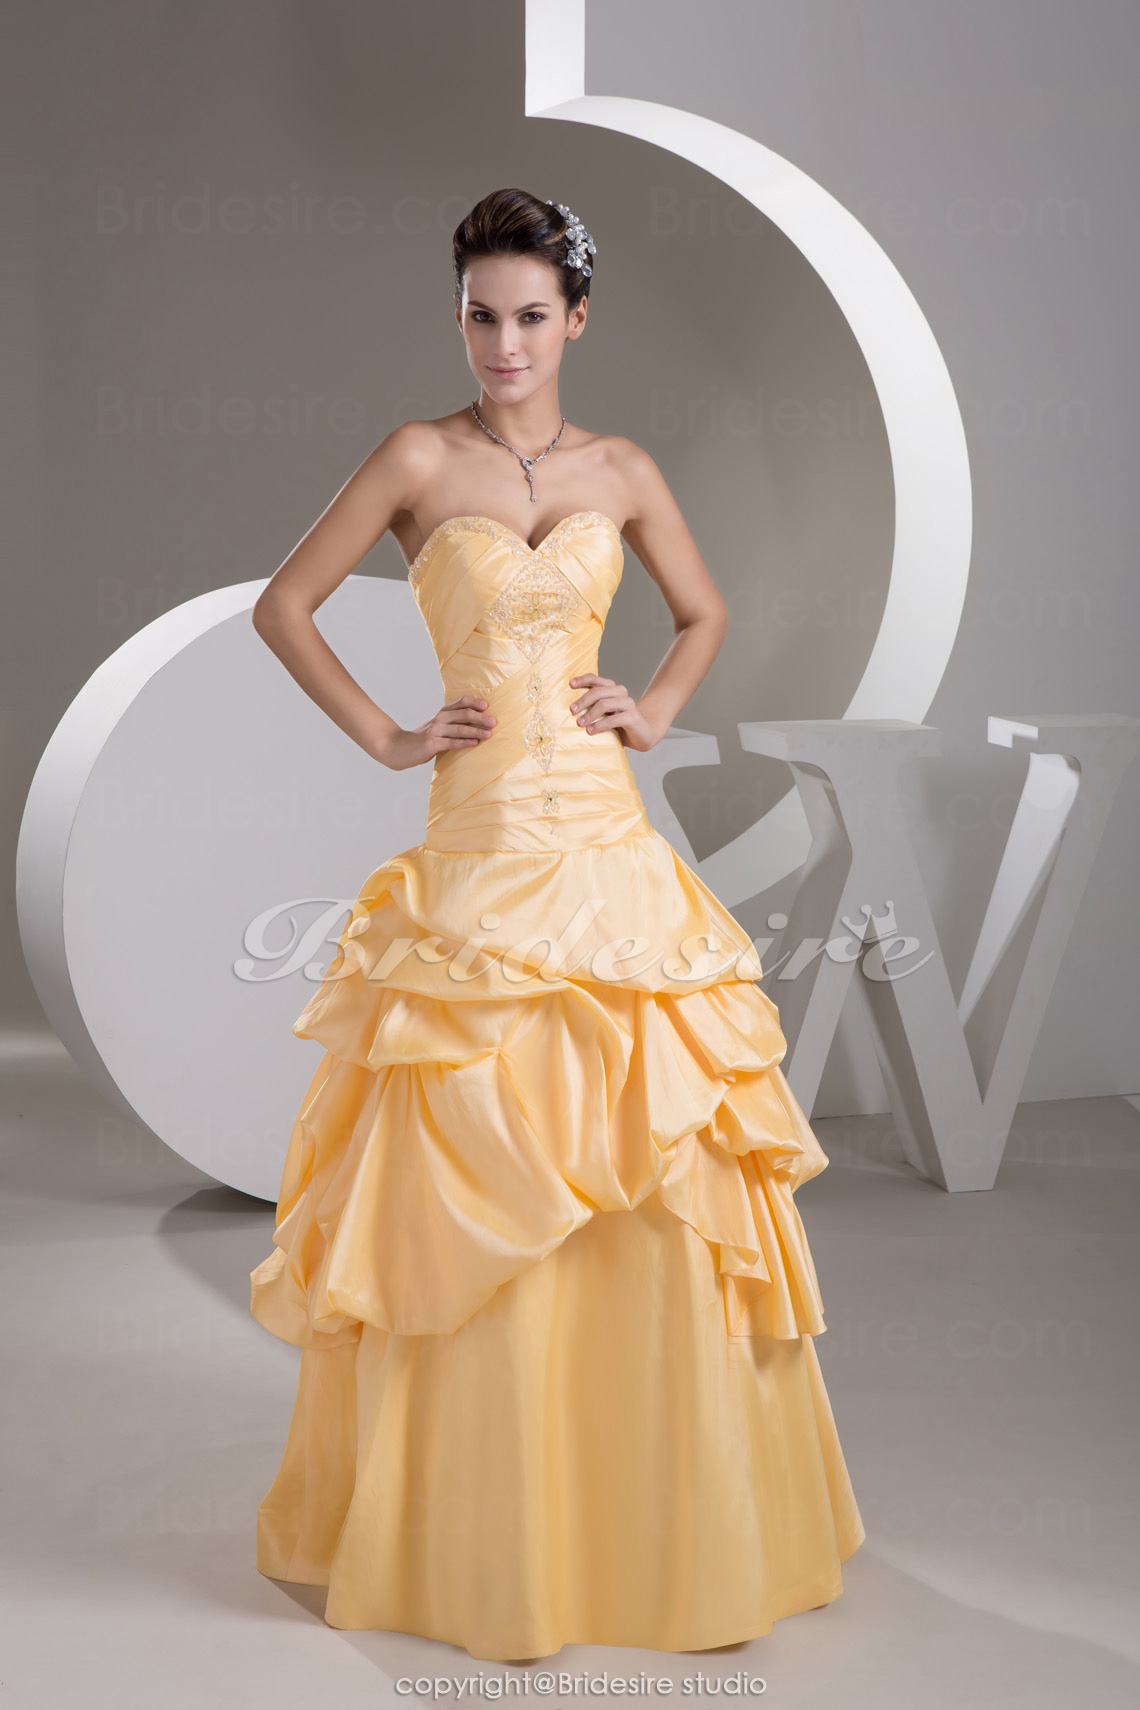 A-line Sweetheart Floor-length Sleeveless Taffeta Dress